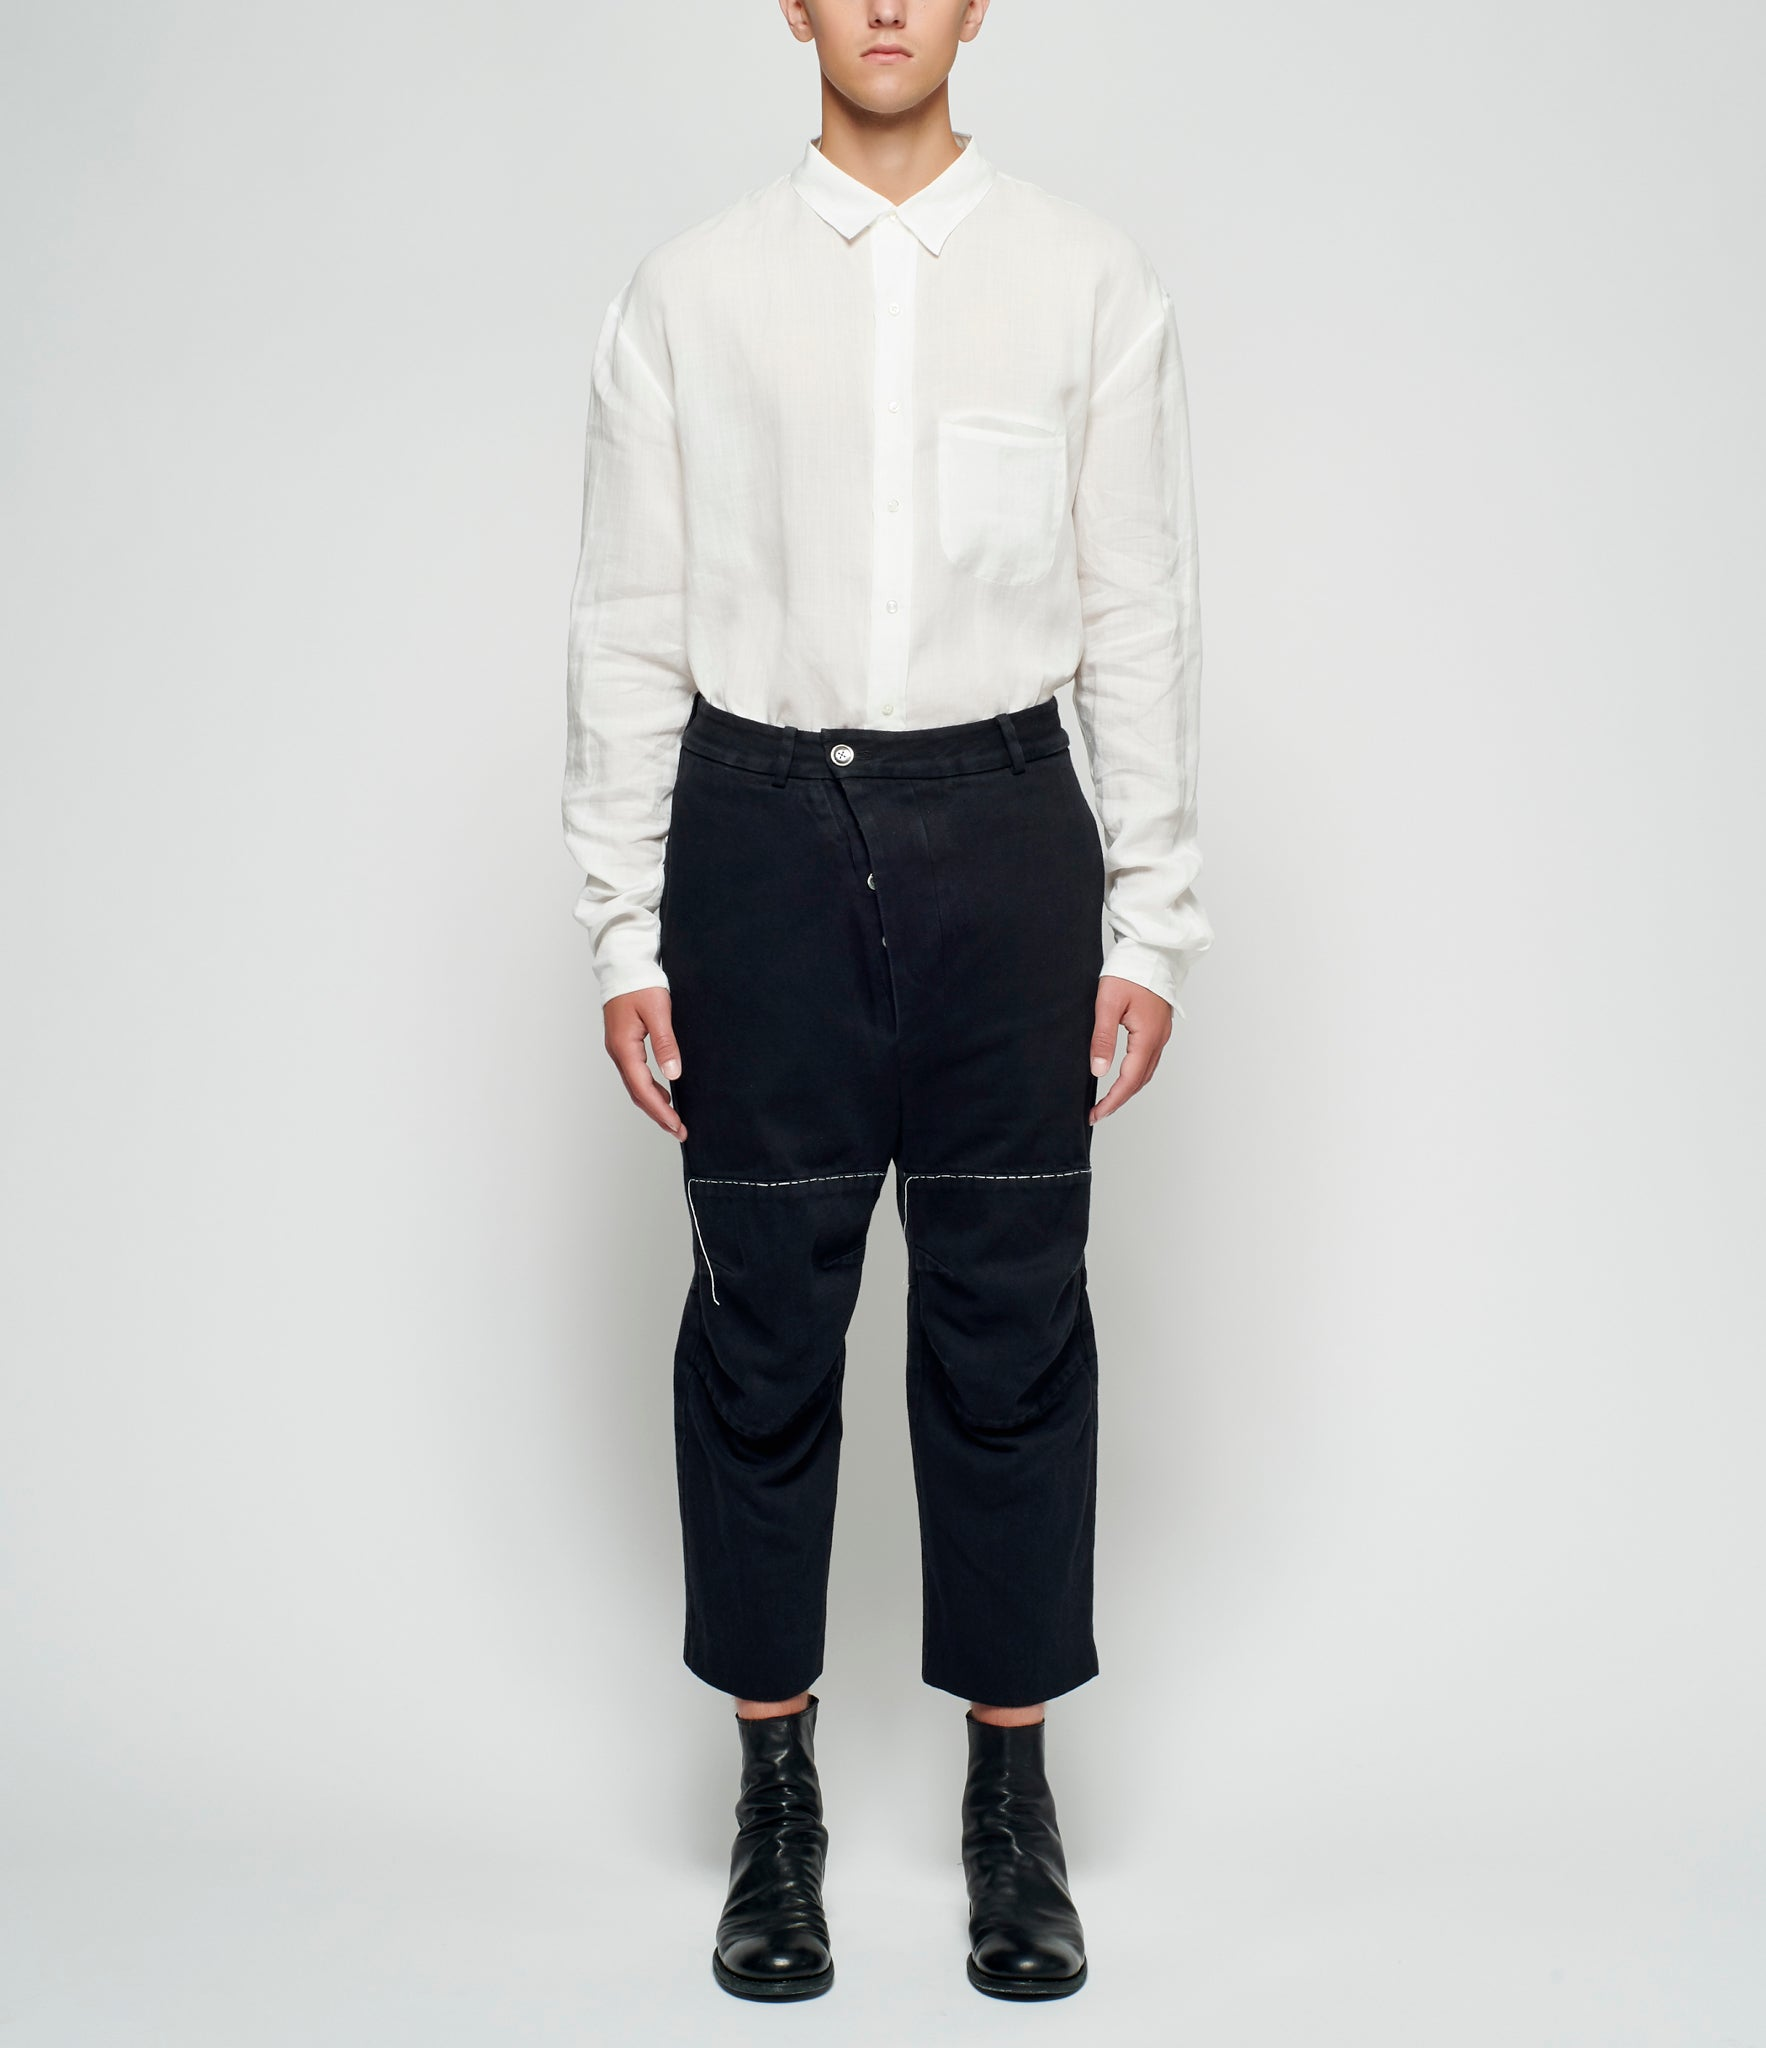 Sagittaire A Basting Stitched Articulated Denim Pants